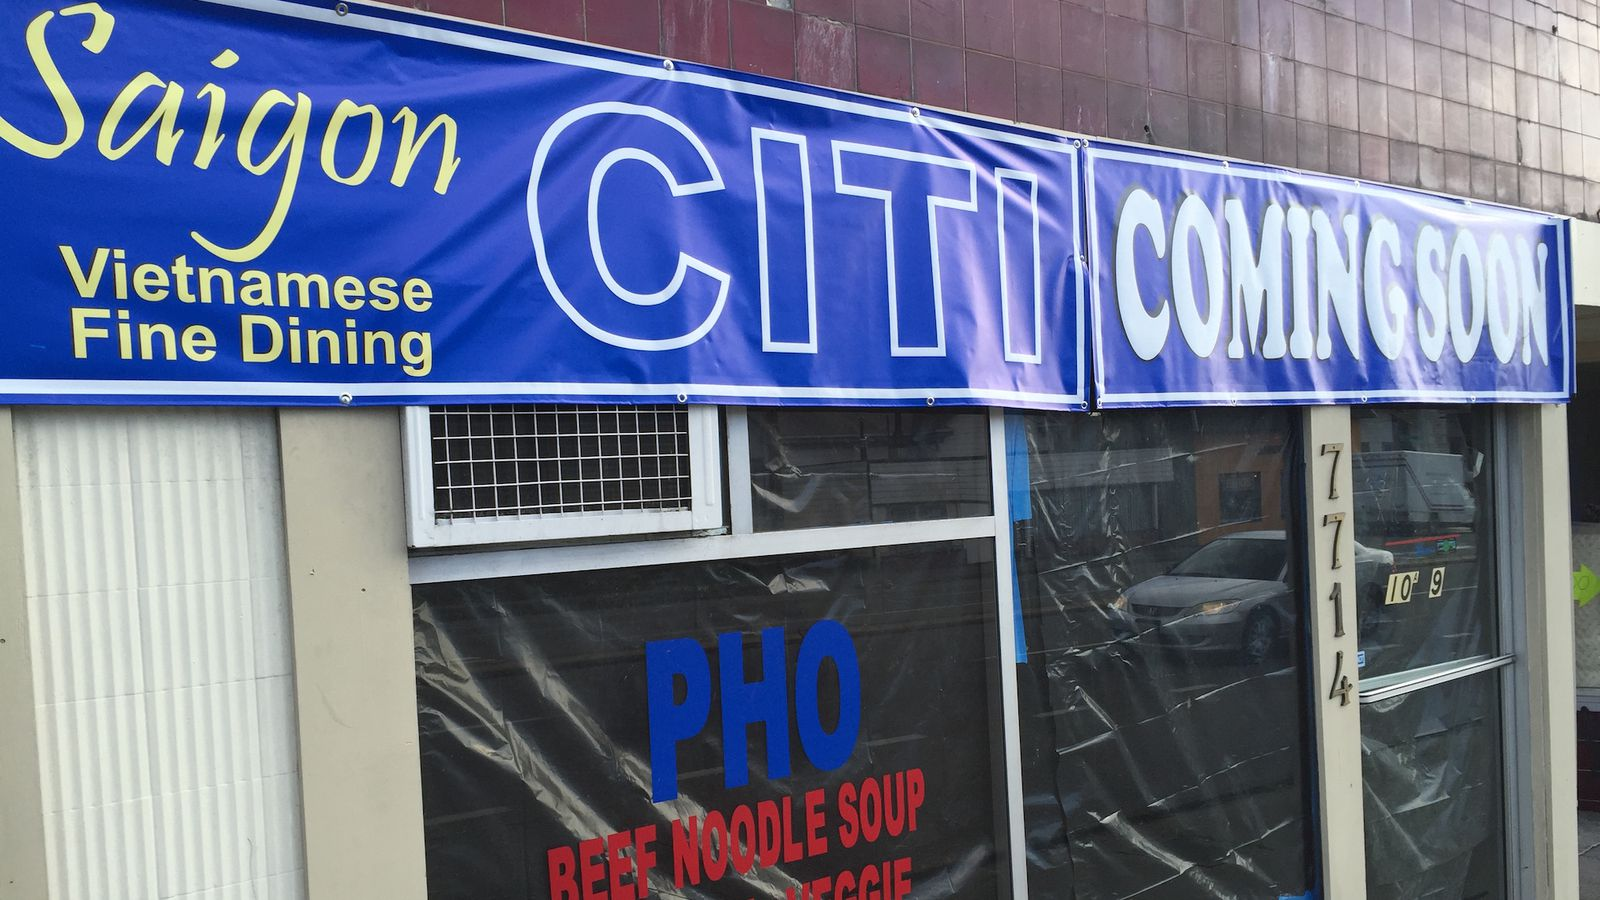 Updated: Saigon Pho and Deli Opens Near Northgate, Saigon Citi Coming Soon to Green Lake